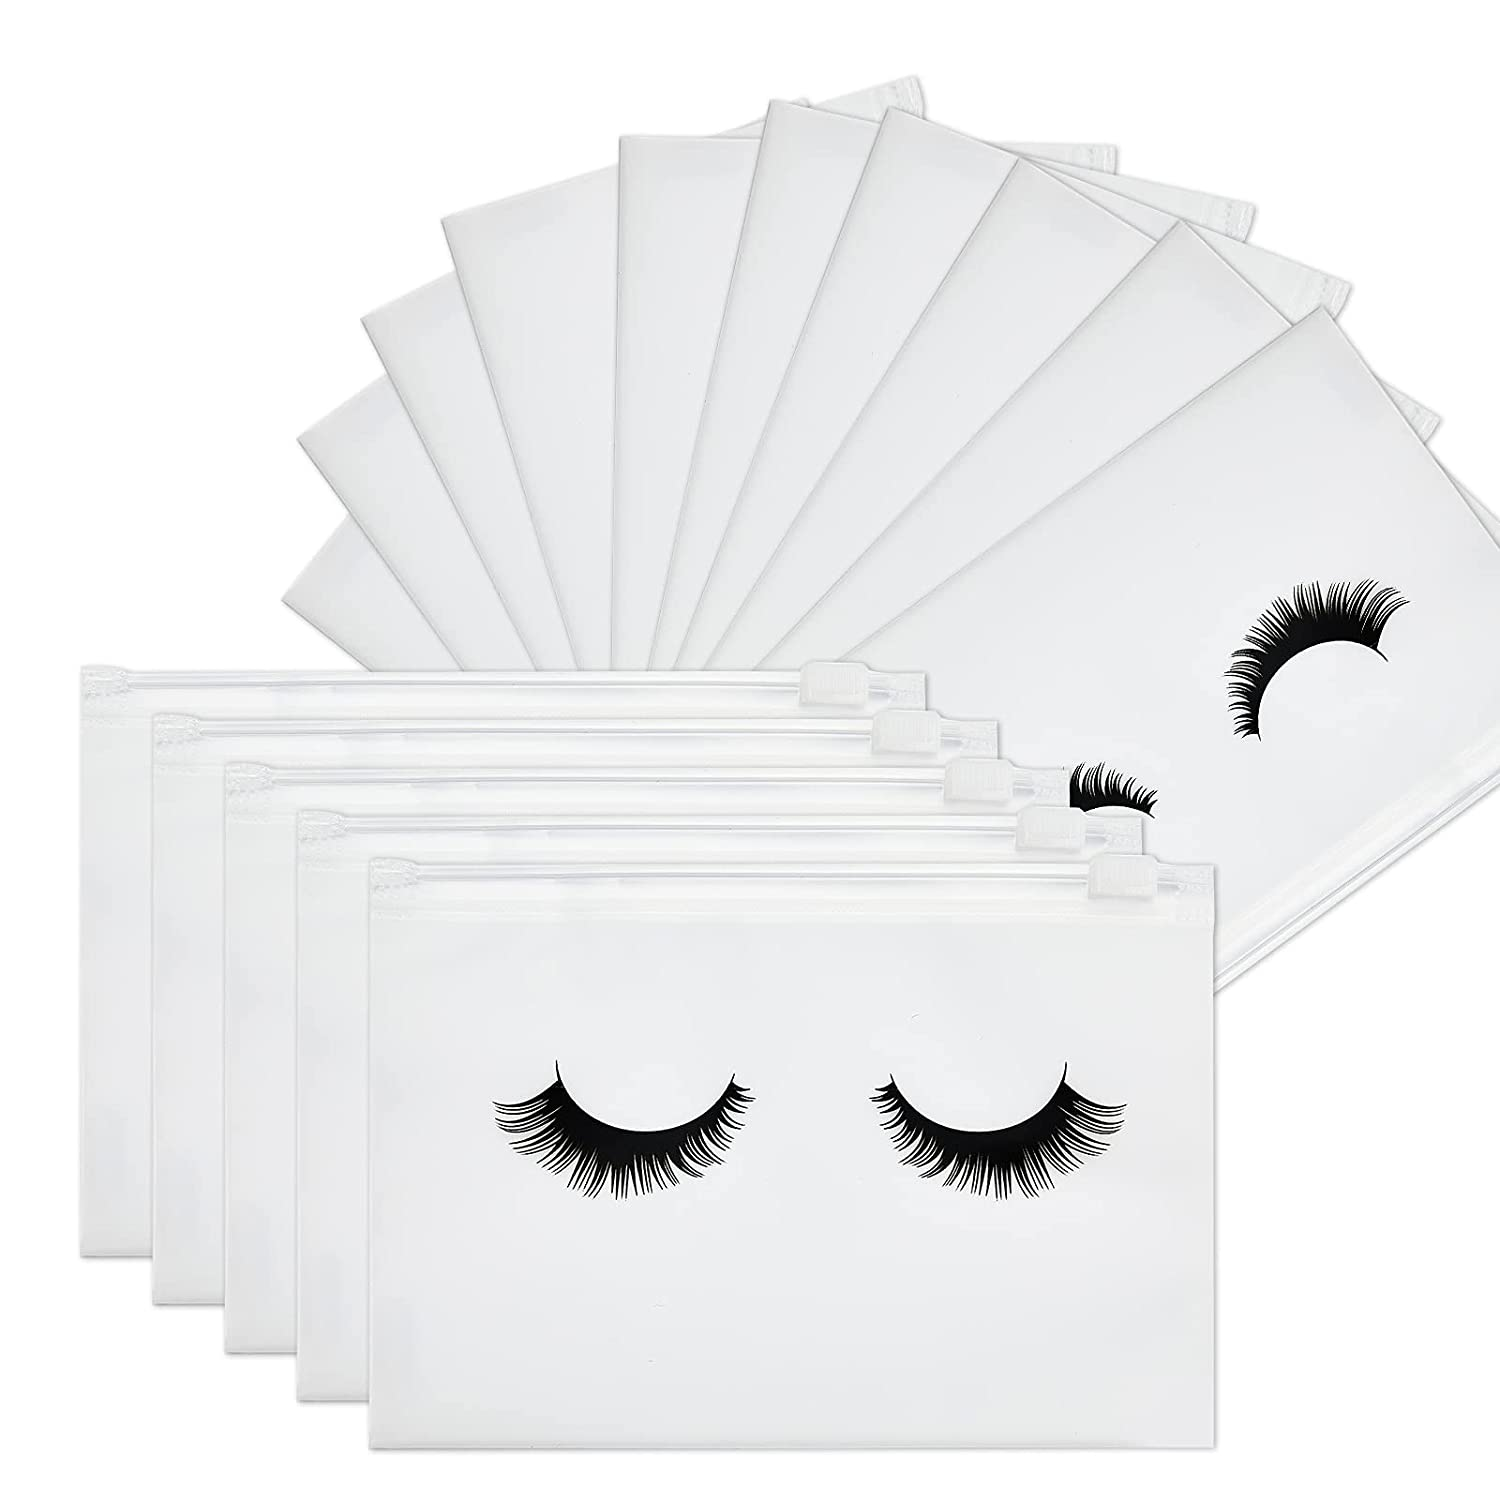 50 Pieces Eyelash Aftercare Ba Cosmetic Makeup Bags Brand Cheap Sale Max 62% OFF Venue